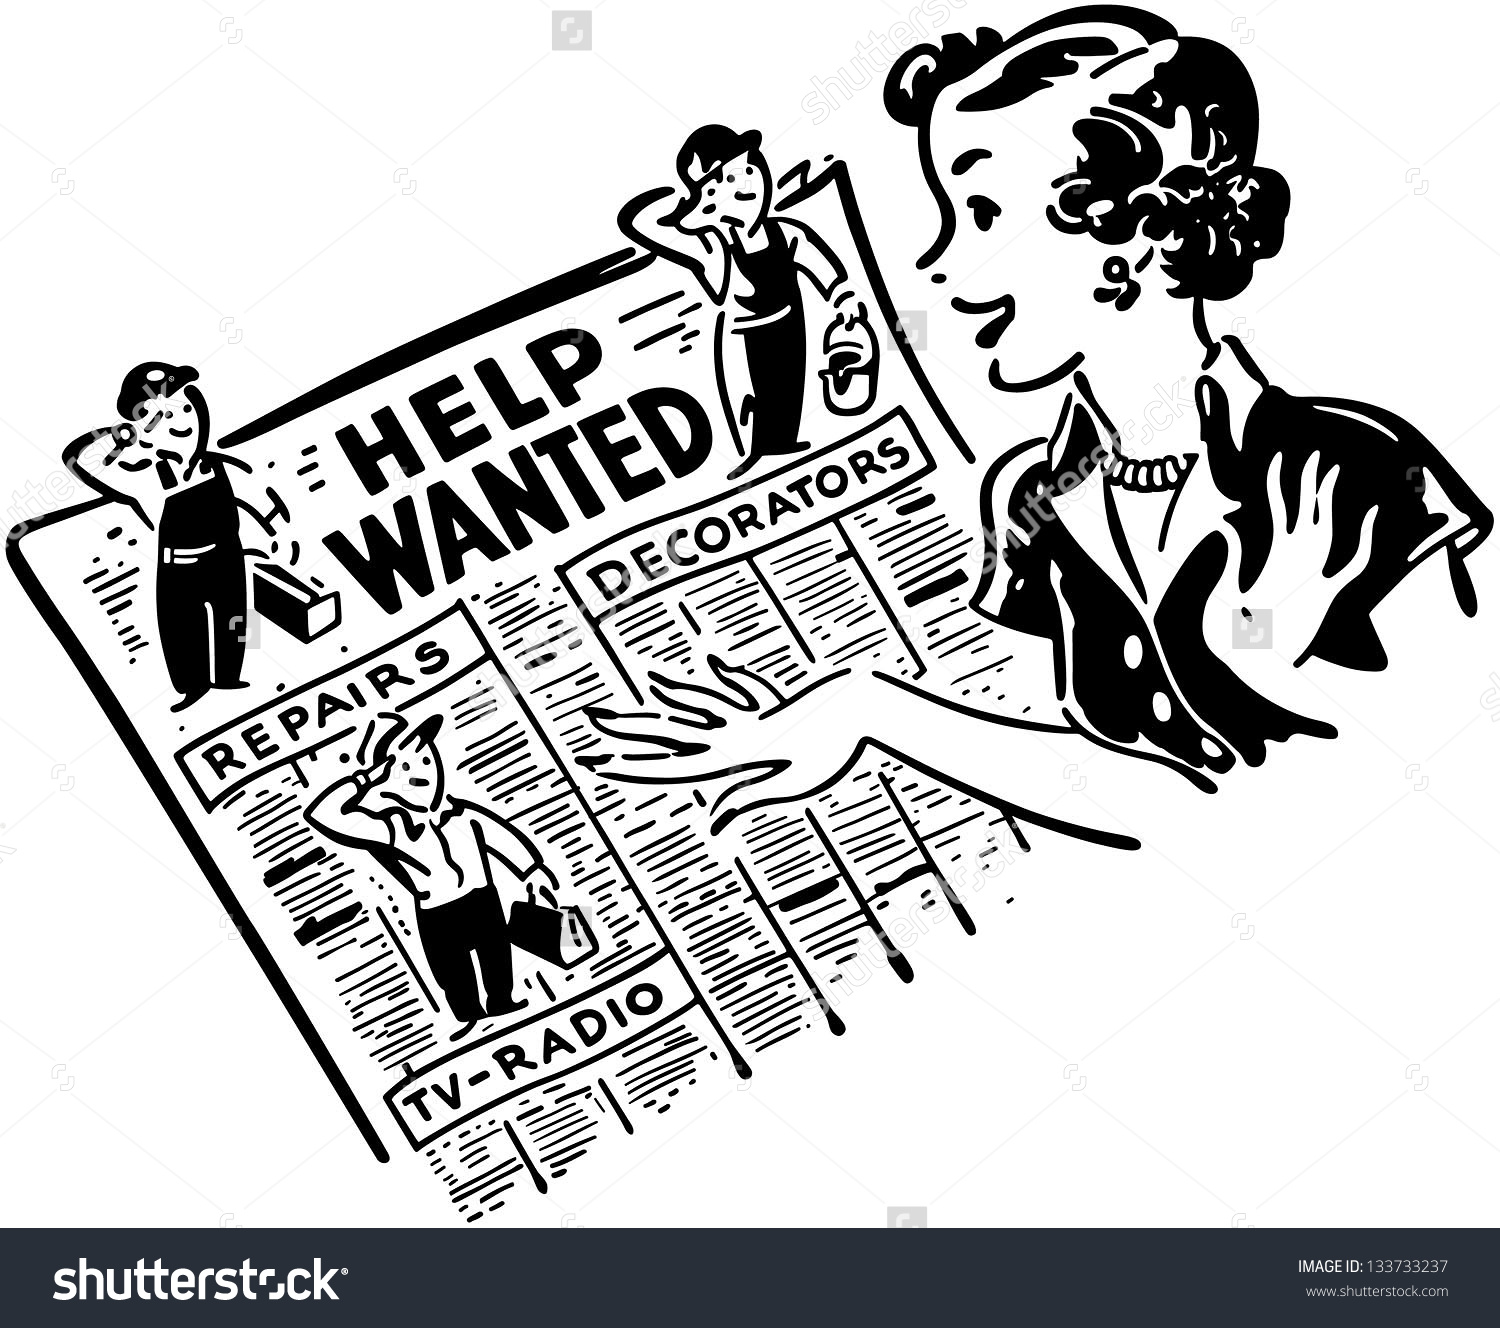 Gal Reading Help Wanted Ads - Retro Clip-Gal Reading Help Wanted Ads - Retro Clip Art Illustration-11